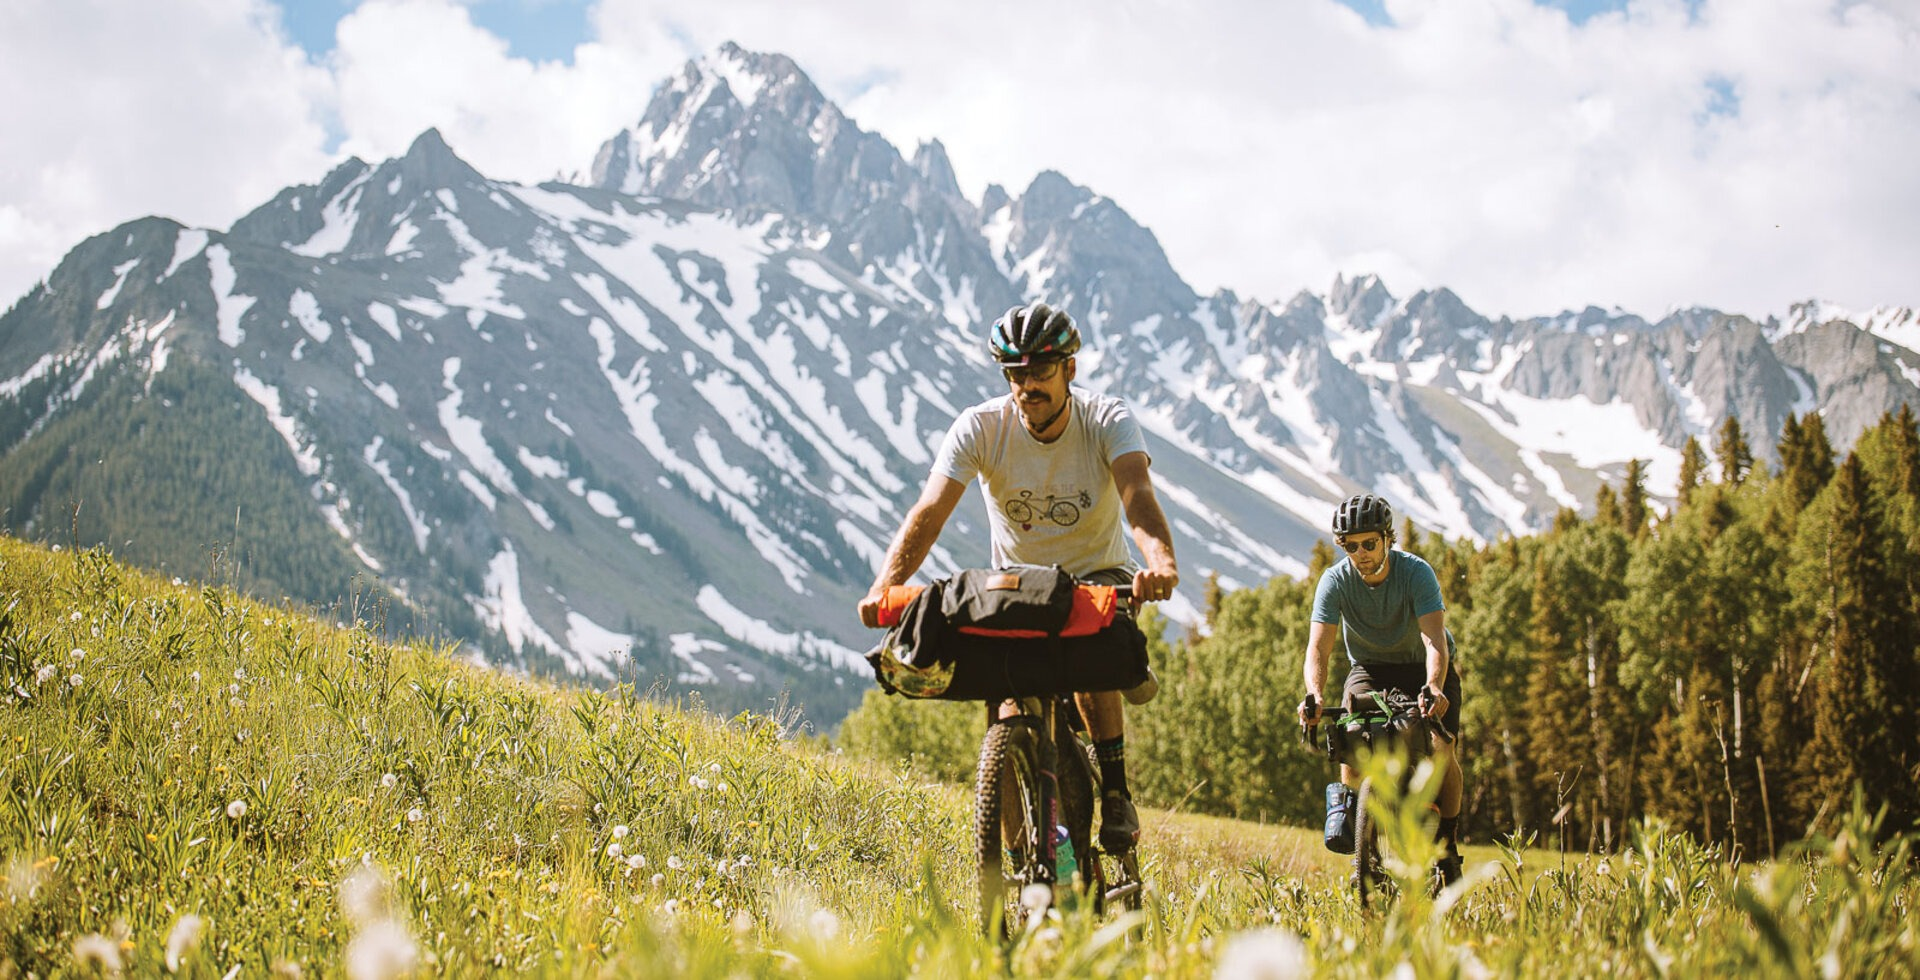 Covey Potter and Campbell Diebolt riding along the Dallas Divide in Southwest Colorado. Peaking at 8,983 feet, the divide 27 connects the San Juan Mountains and the Uncompahgre Plateau.